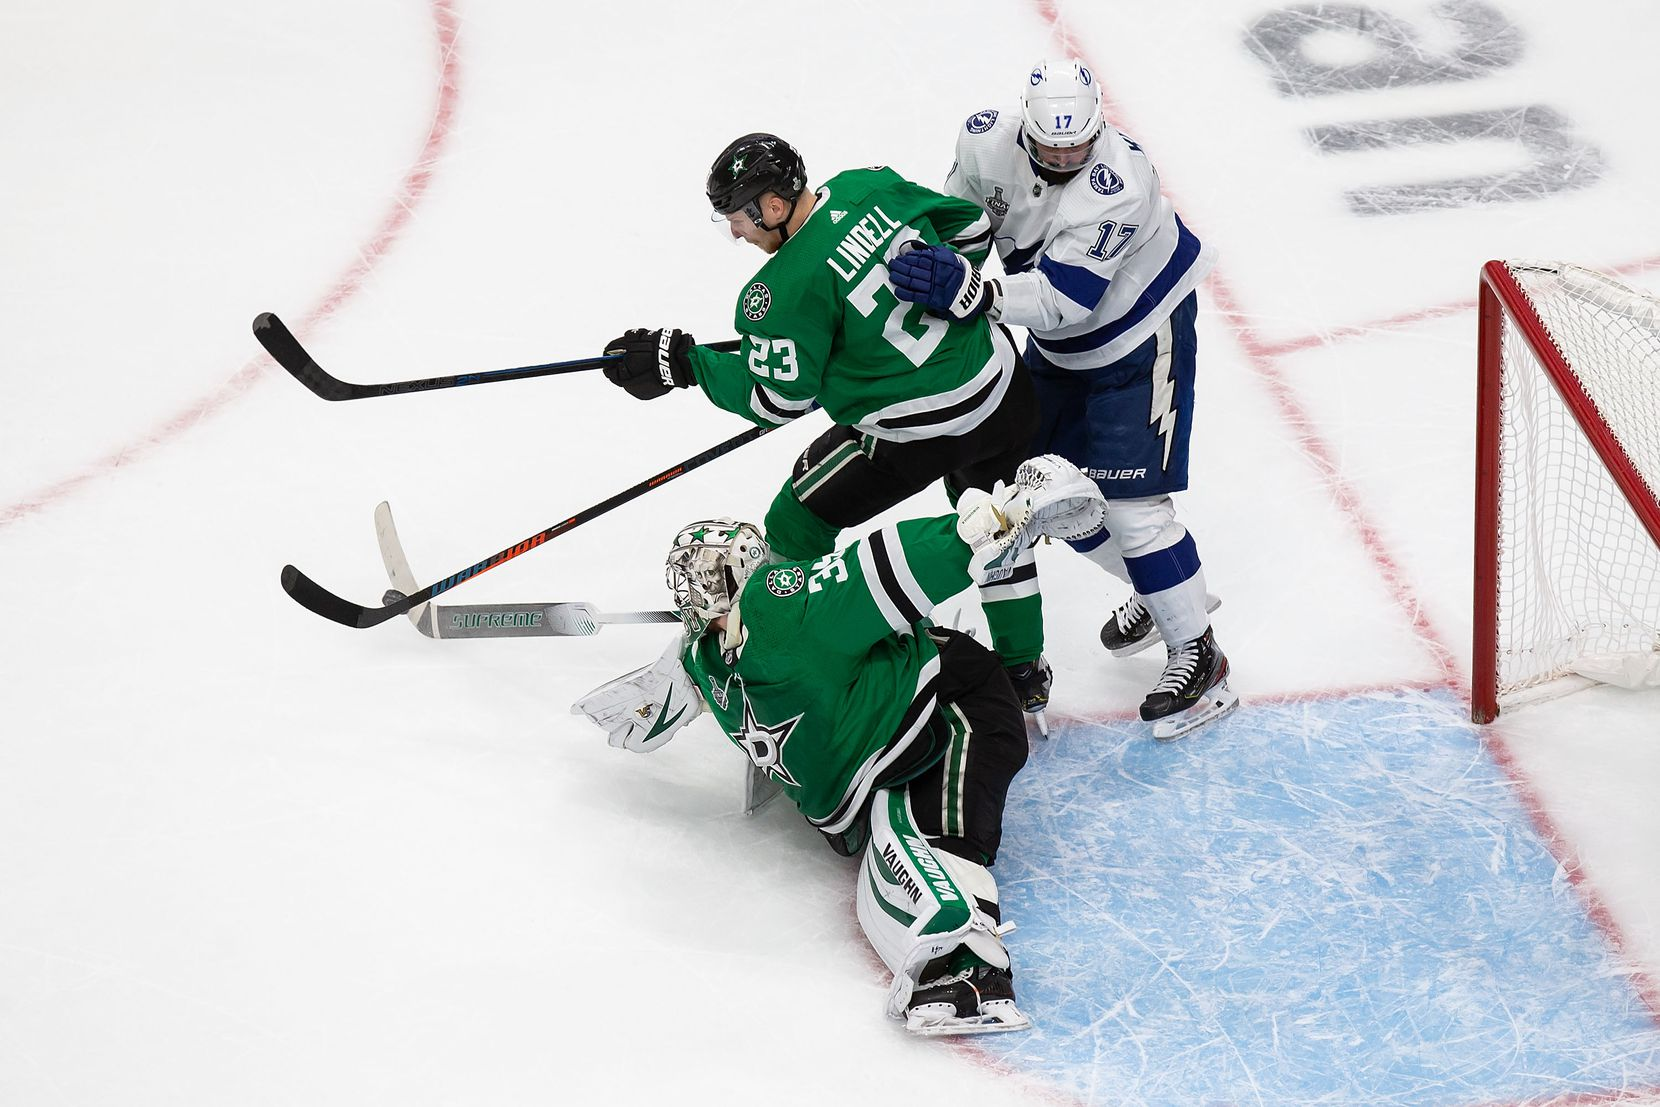 Goaltender Anton Khudobin (35) of the Dallas Stars loses his stick making a save against Alex Killorn (17) of the Tampa Bay Lightning during Game Three of the Stanley Cup Final at Rogers Place in Edmonton, Alberta, Canada on Wednesday, September 23, 2020. (Codie McLachlan/Special Contributor)